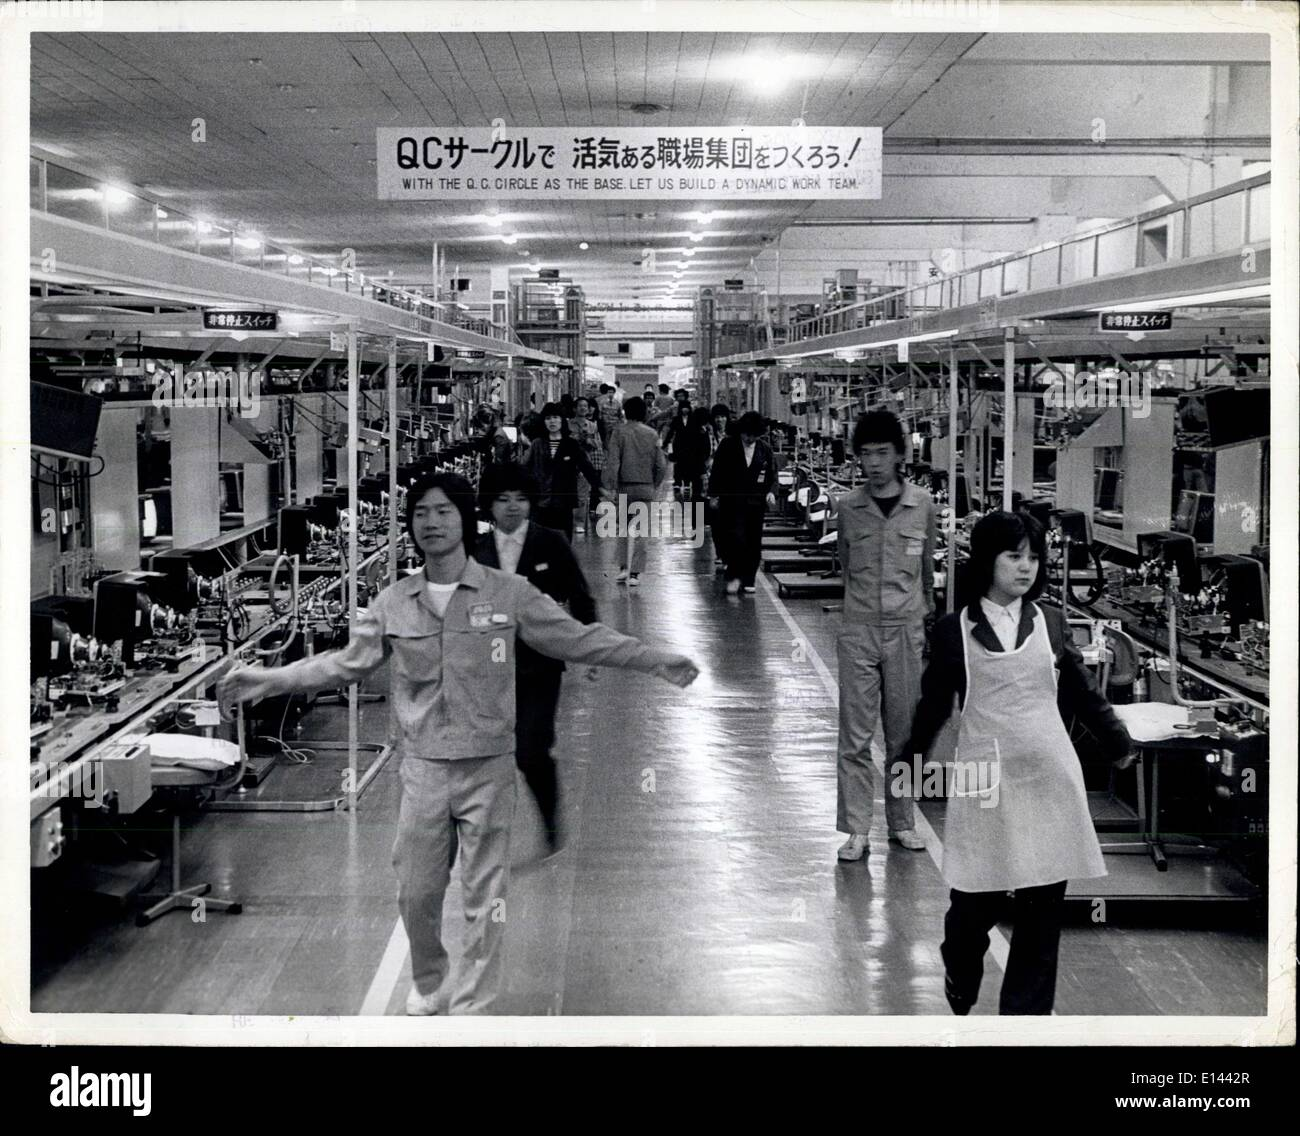 Apr. 04, 2012 - Matshushita Panasonic color T.V. production Osaka, Japan: He Japanese lead the world in production of color television sets. Here at Matsushita Ibiraki factory in Osaka Japan aremate color television sets under the brand name of Panasonic. Most of the sets are for export. Photo shows workers on the production line taking a ten minuted exercise break. - Stock Image